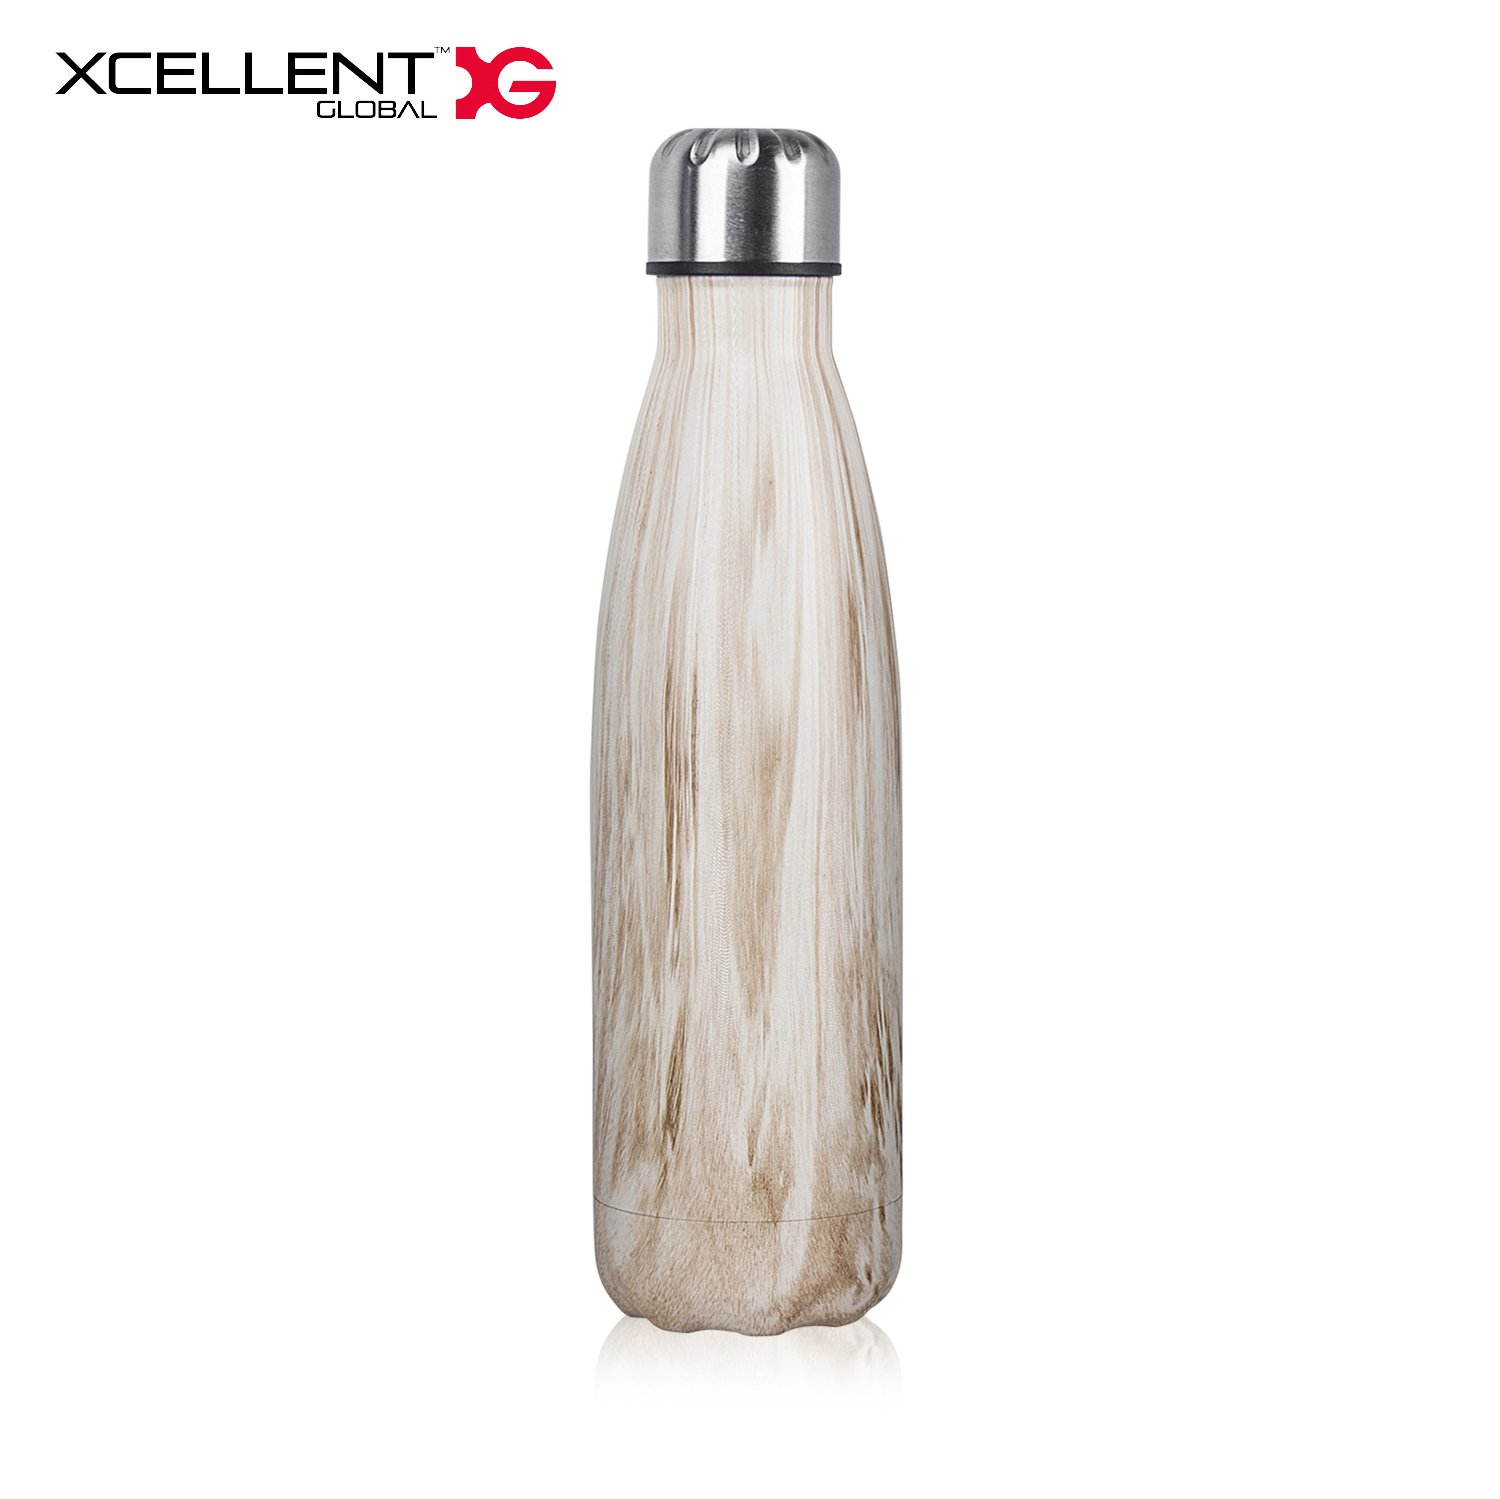 Xcellent Global Double Walled Vacuum Insulated Water Bottle 17oz Leak-Proof Water Thermos Travel Sports Water Bottle For Cold and Hot Drinks (Wood)